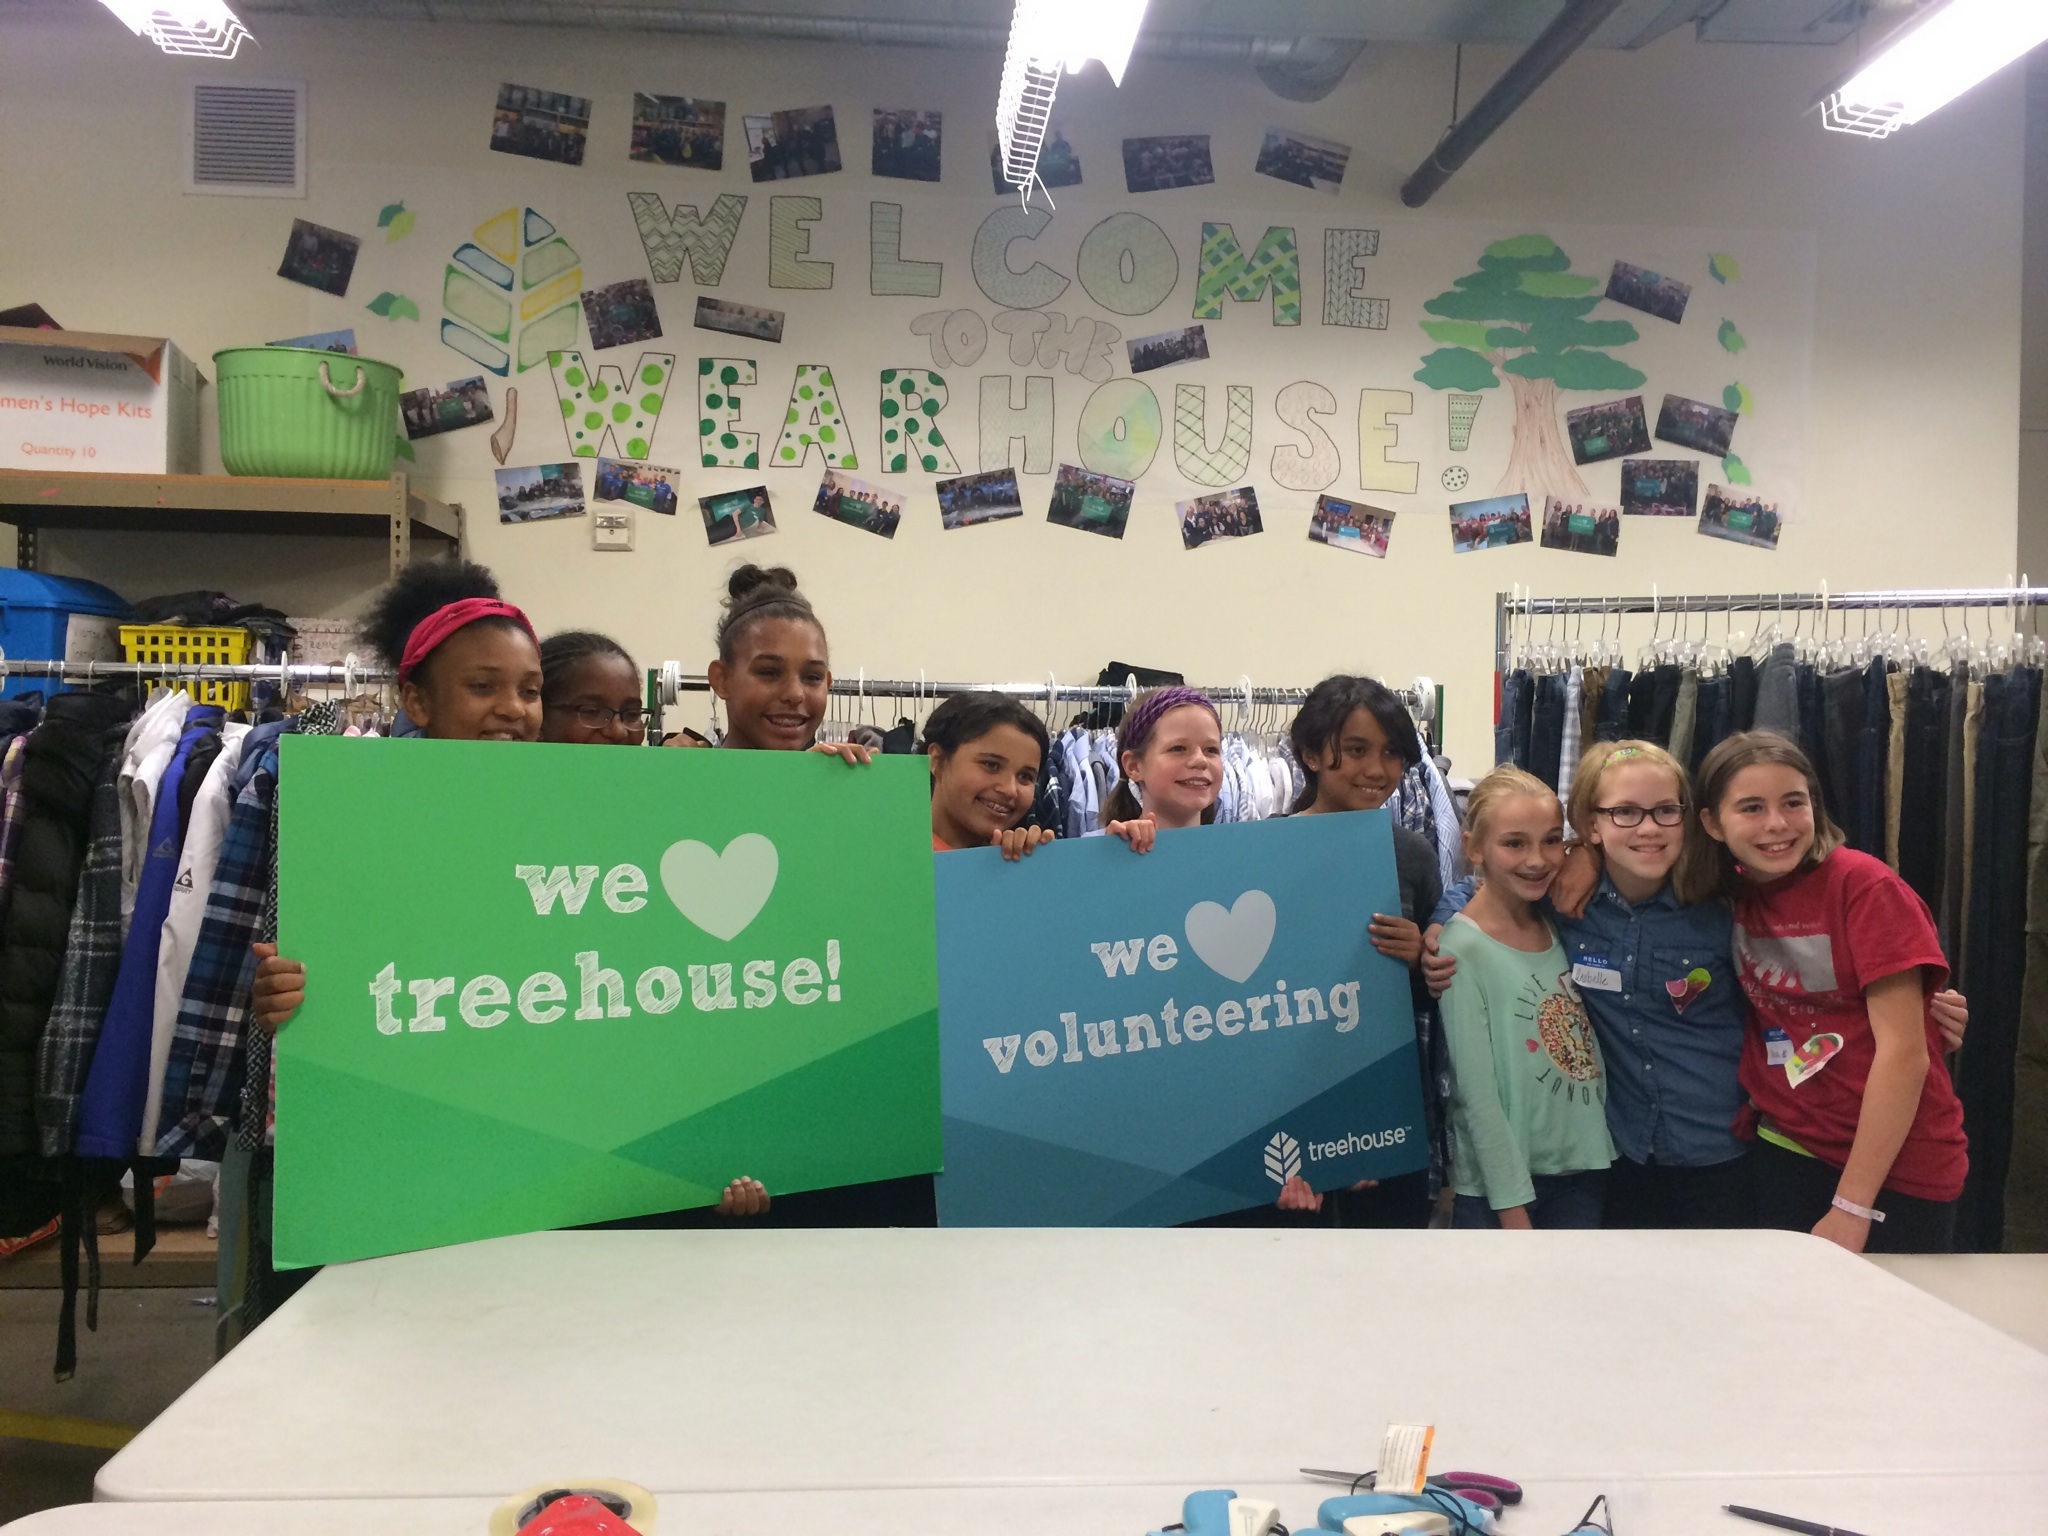 The Treehouse Group.